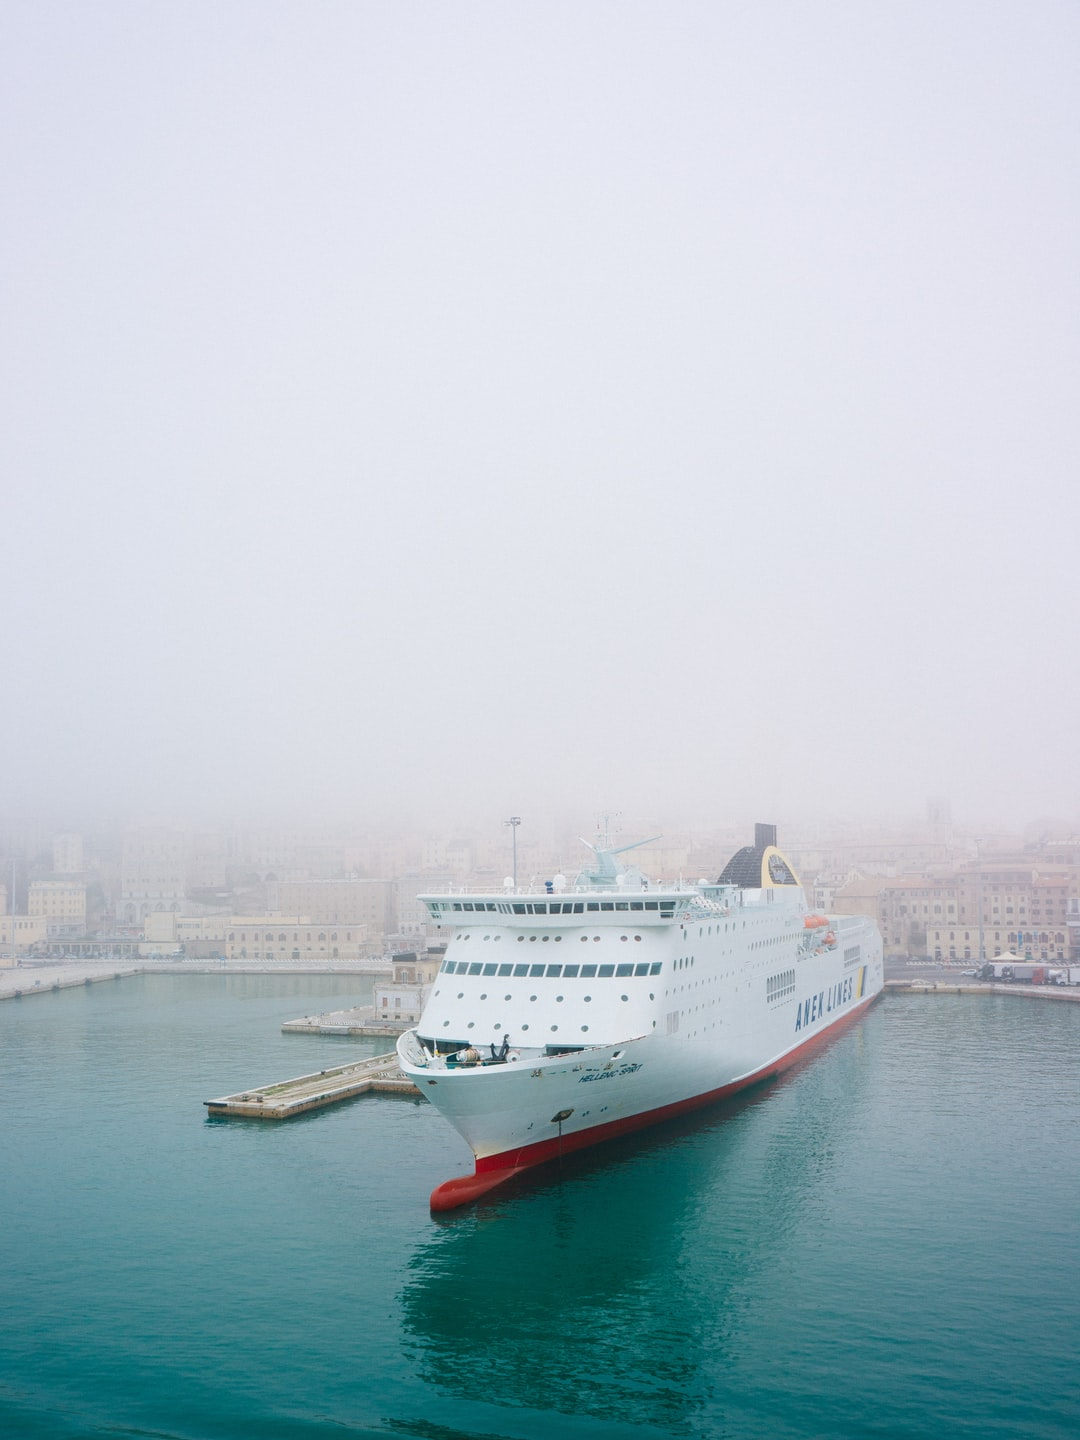 On our way to Greece we made a little stopover in Ancona, Italy and were greeted by a rolling wall of fog.